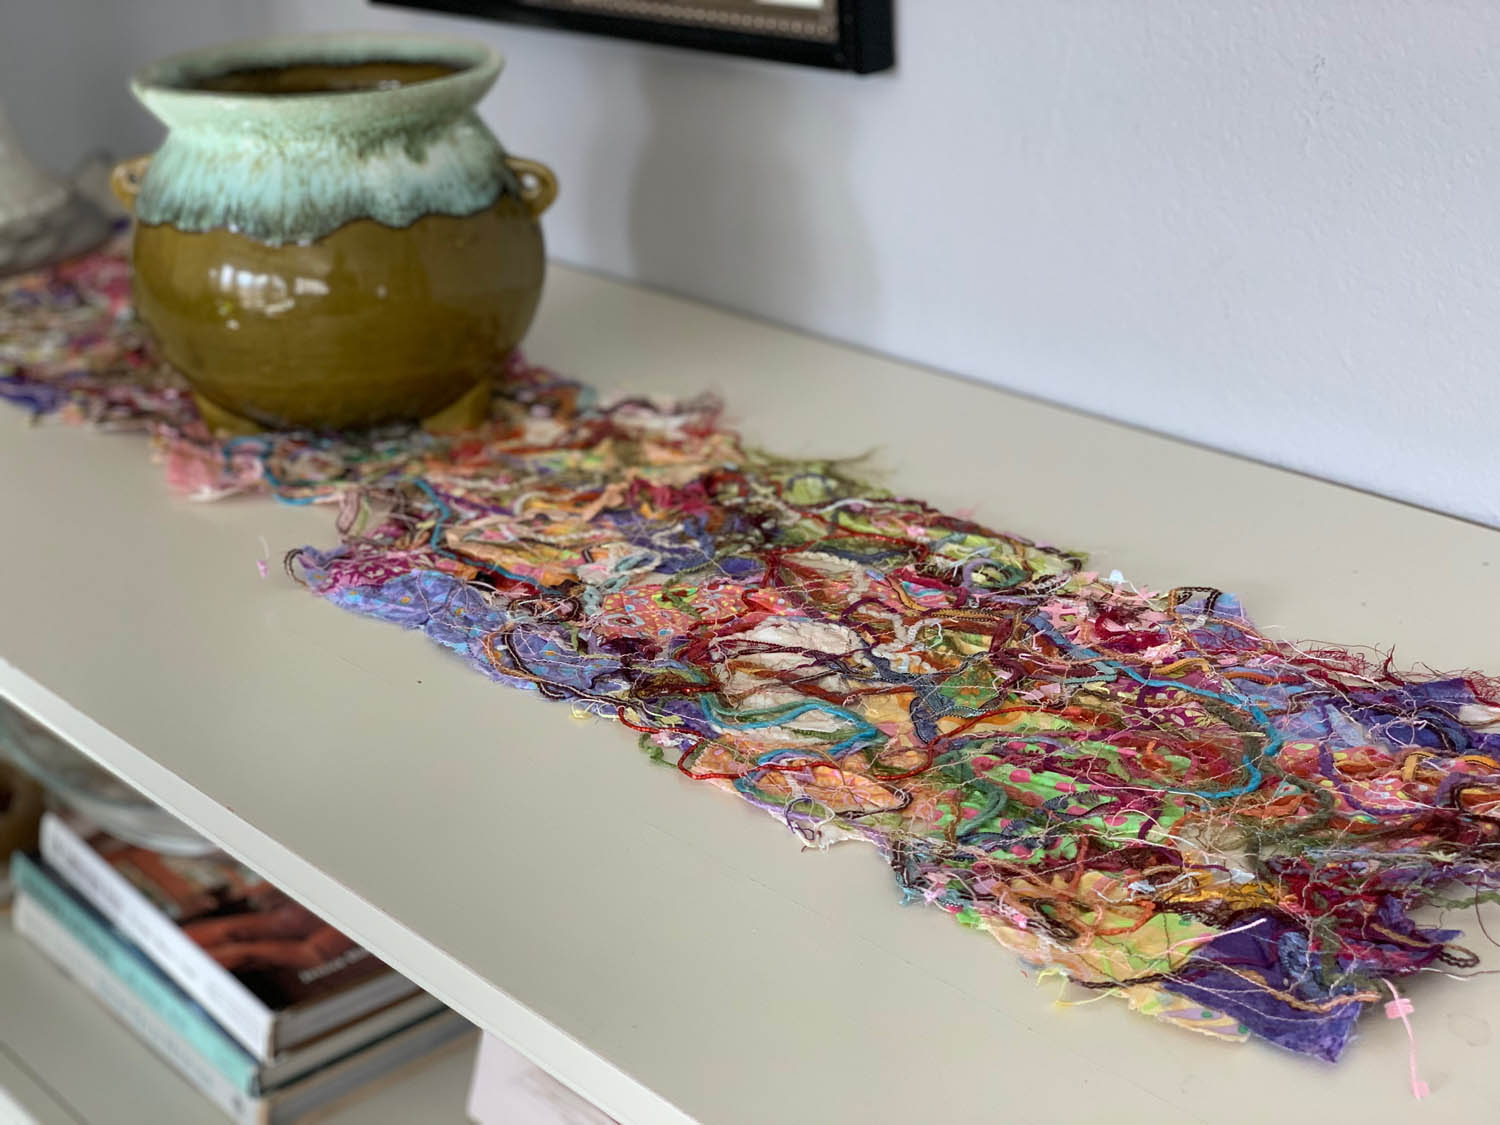 [Sulky Solvy] Upcycled Fiber Thread-Quilted table runner on counter with pottery